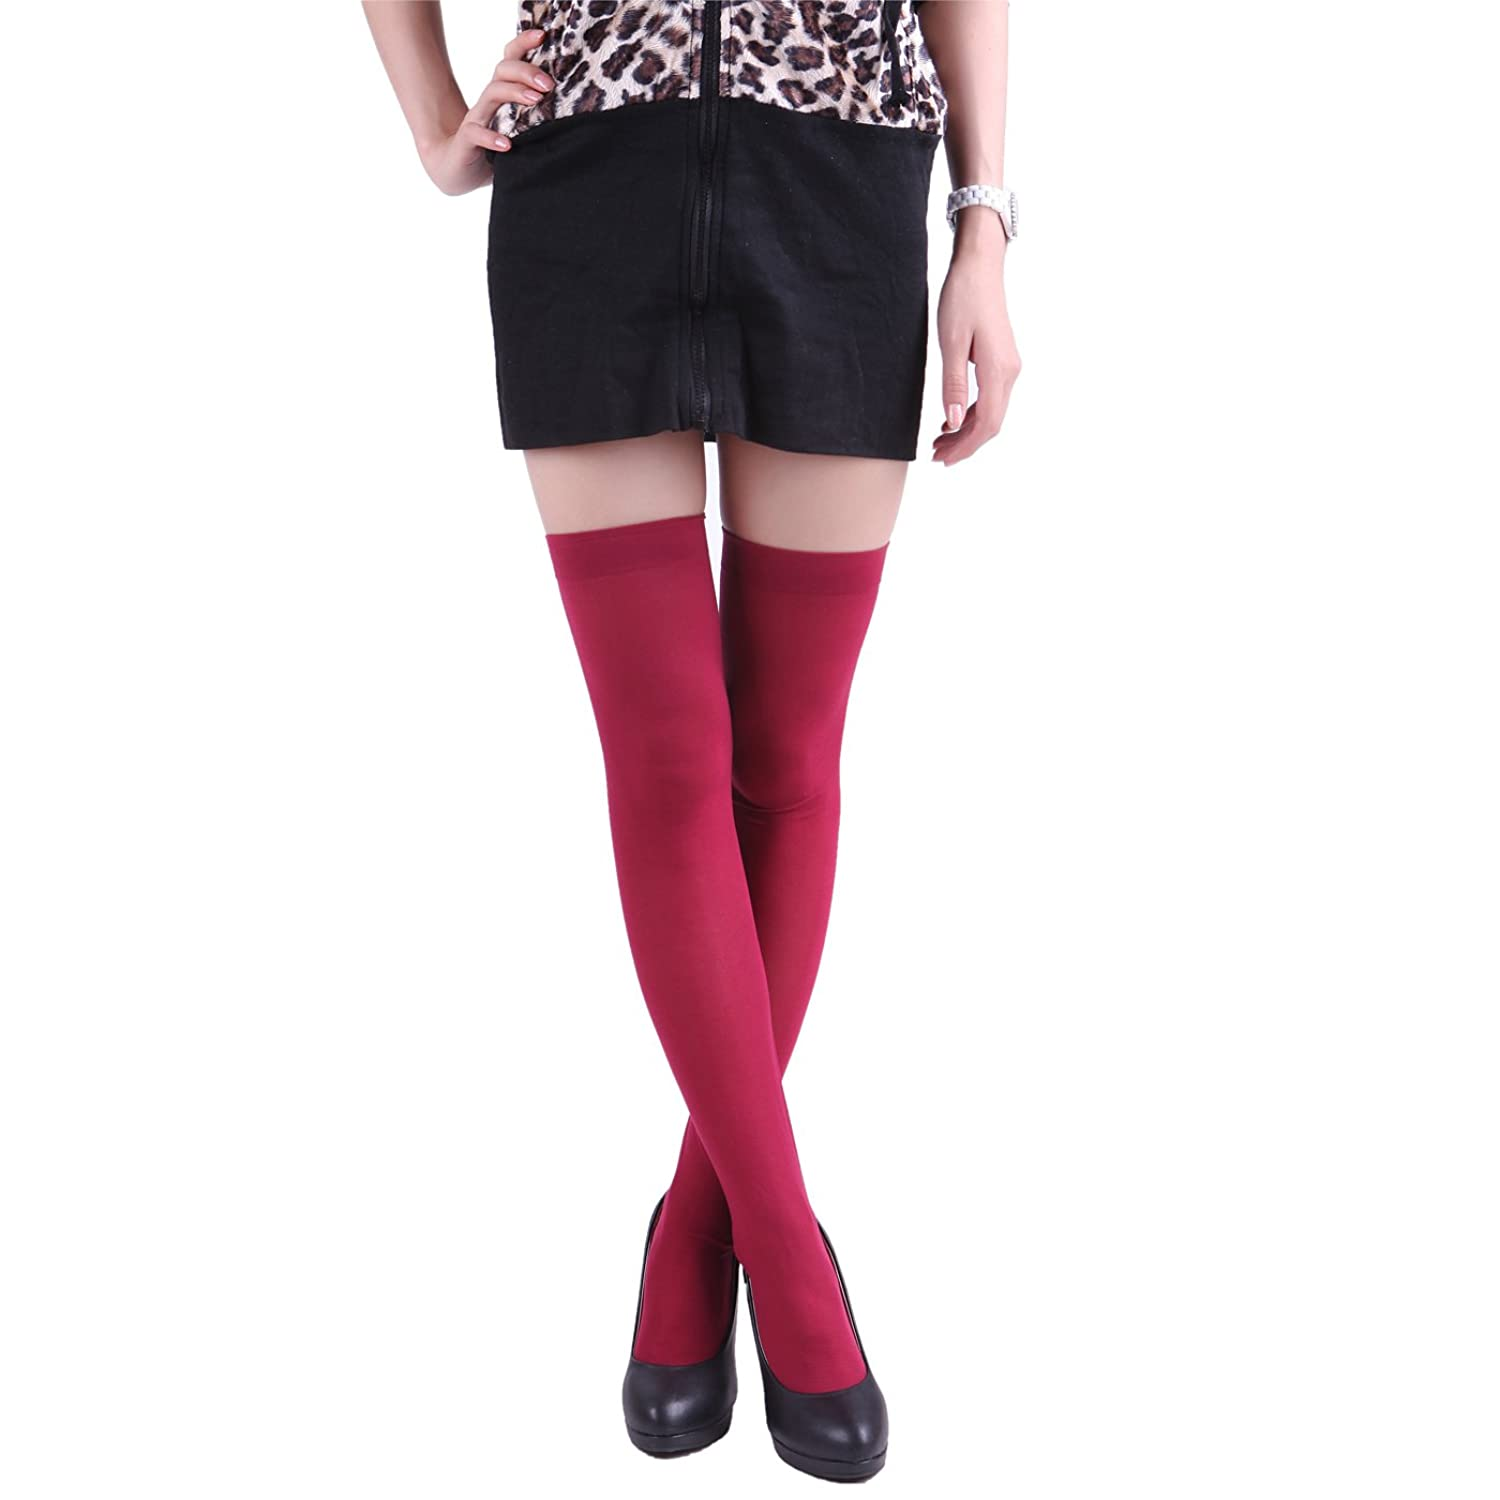 hde women u0027s 4 pack of solid color opaque thigh high stockings